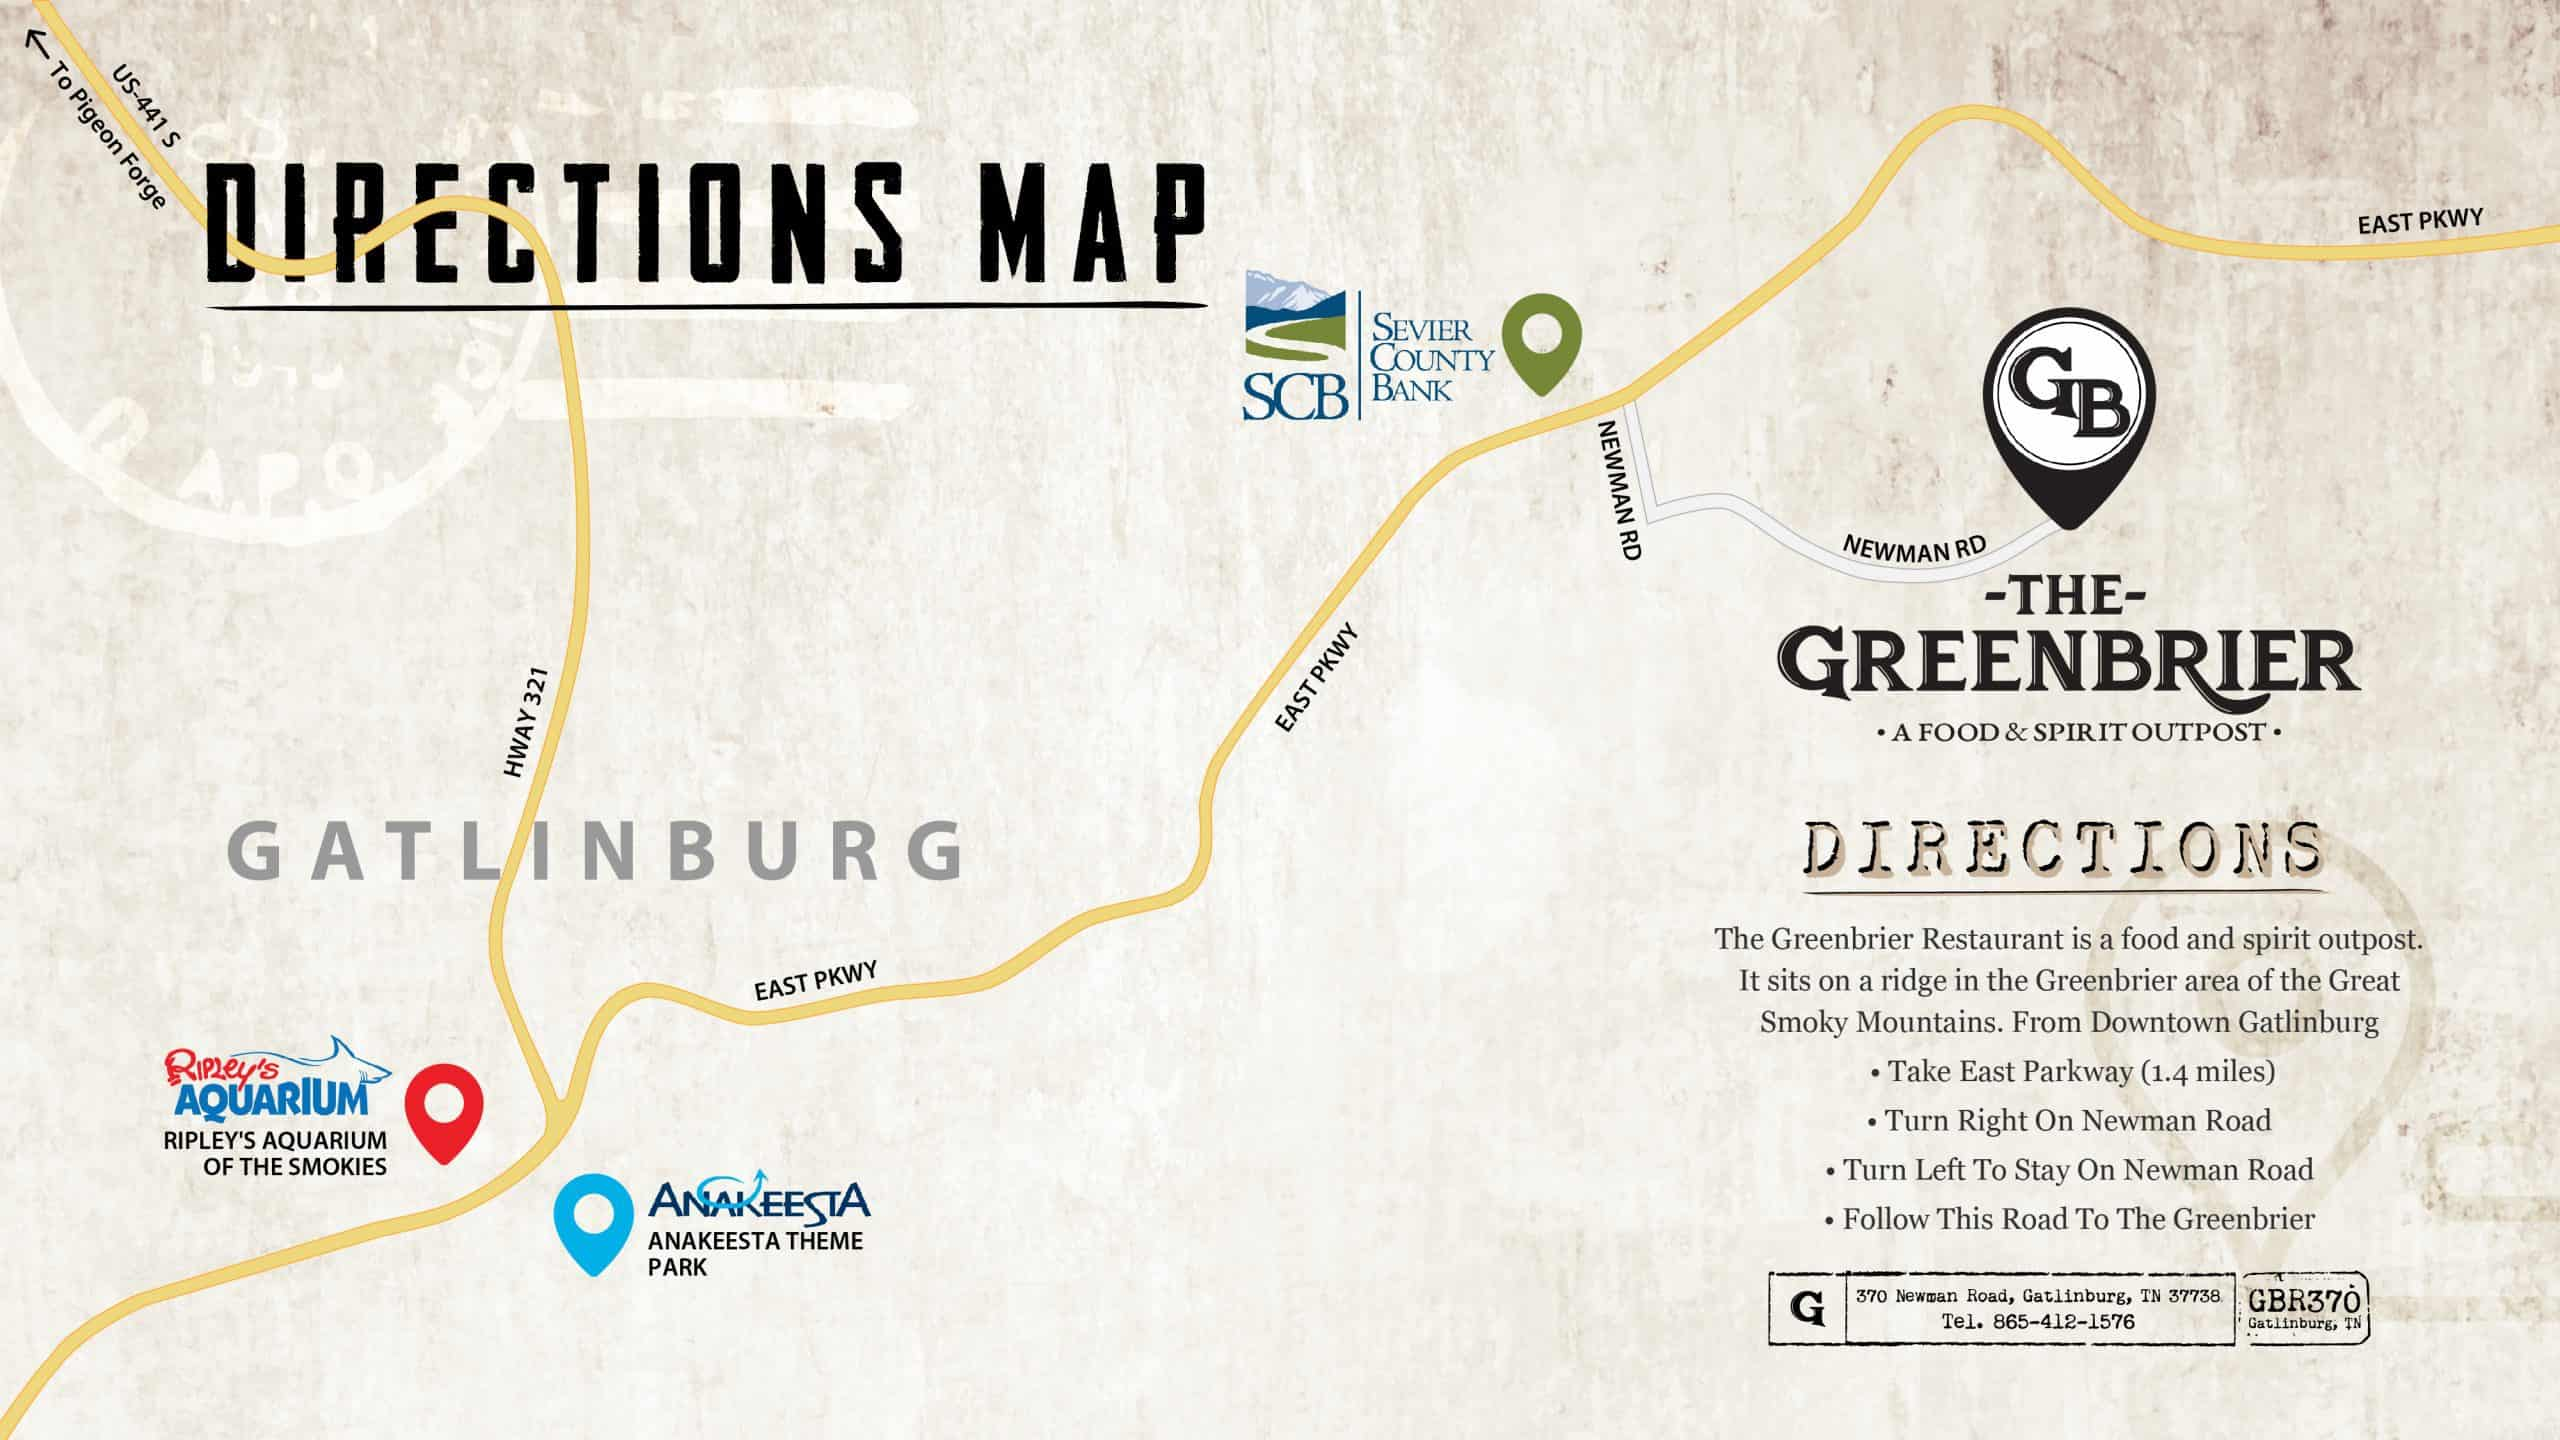 The Greenbrier Restaurant Directions Map